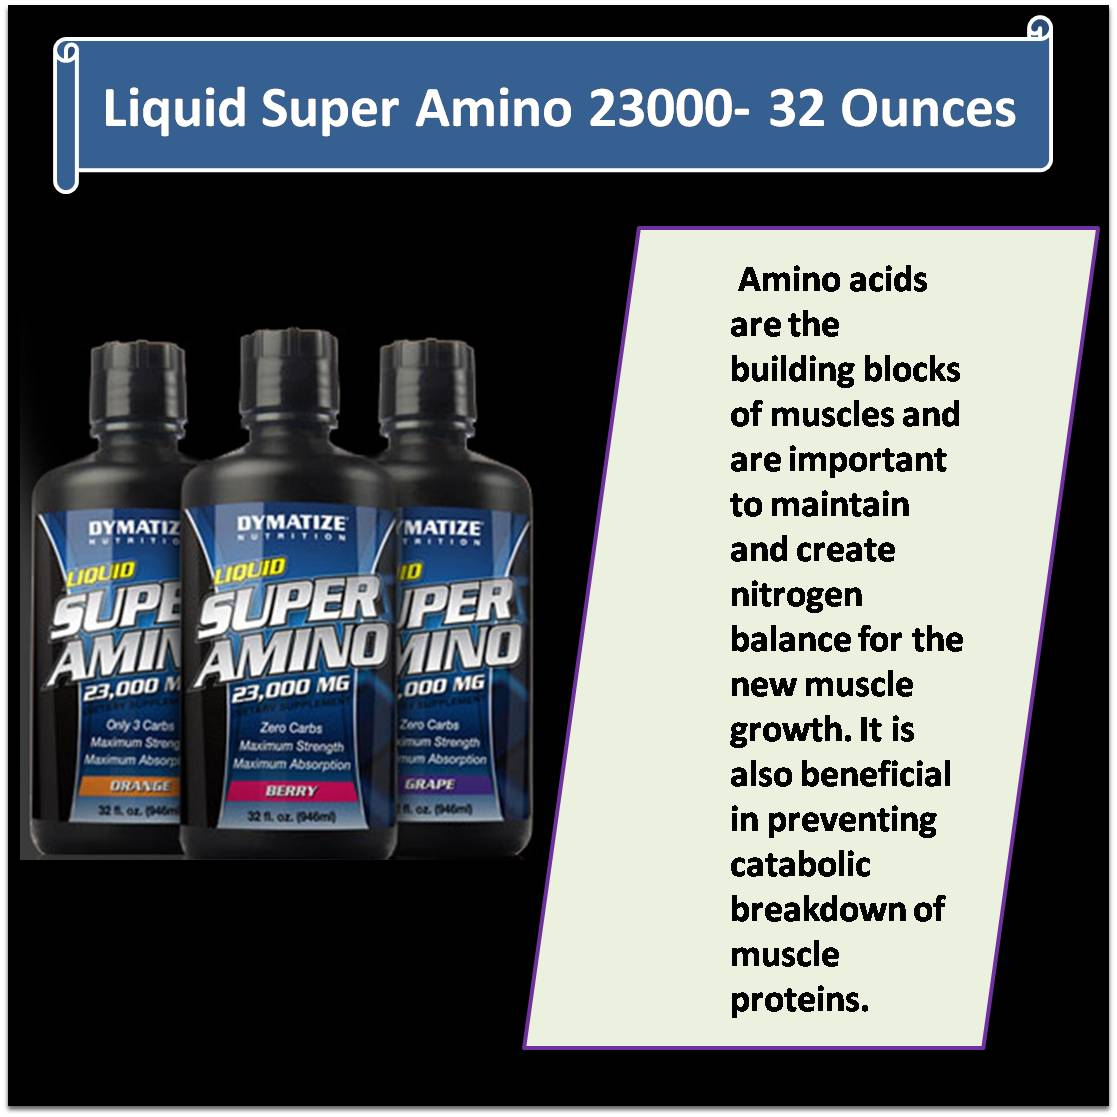 Liquid Super Amino 23000- 32 Ounces